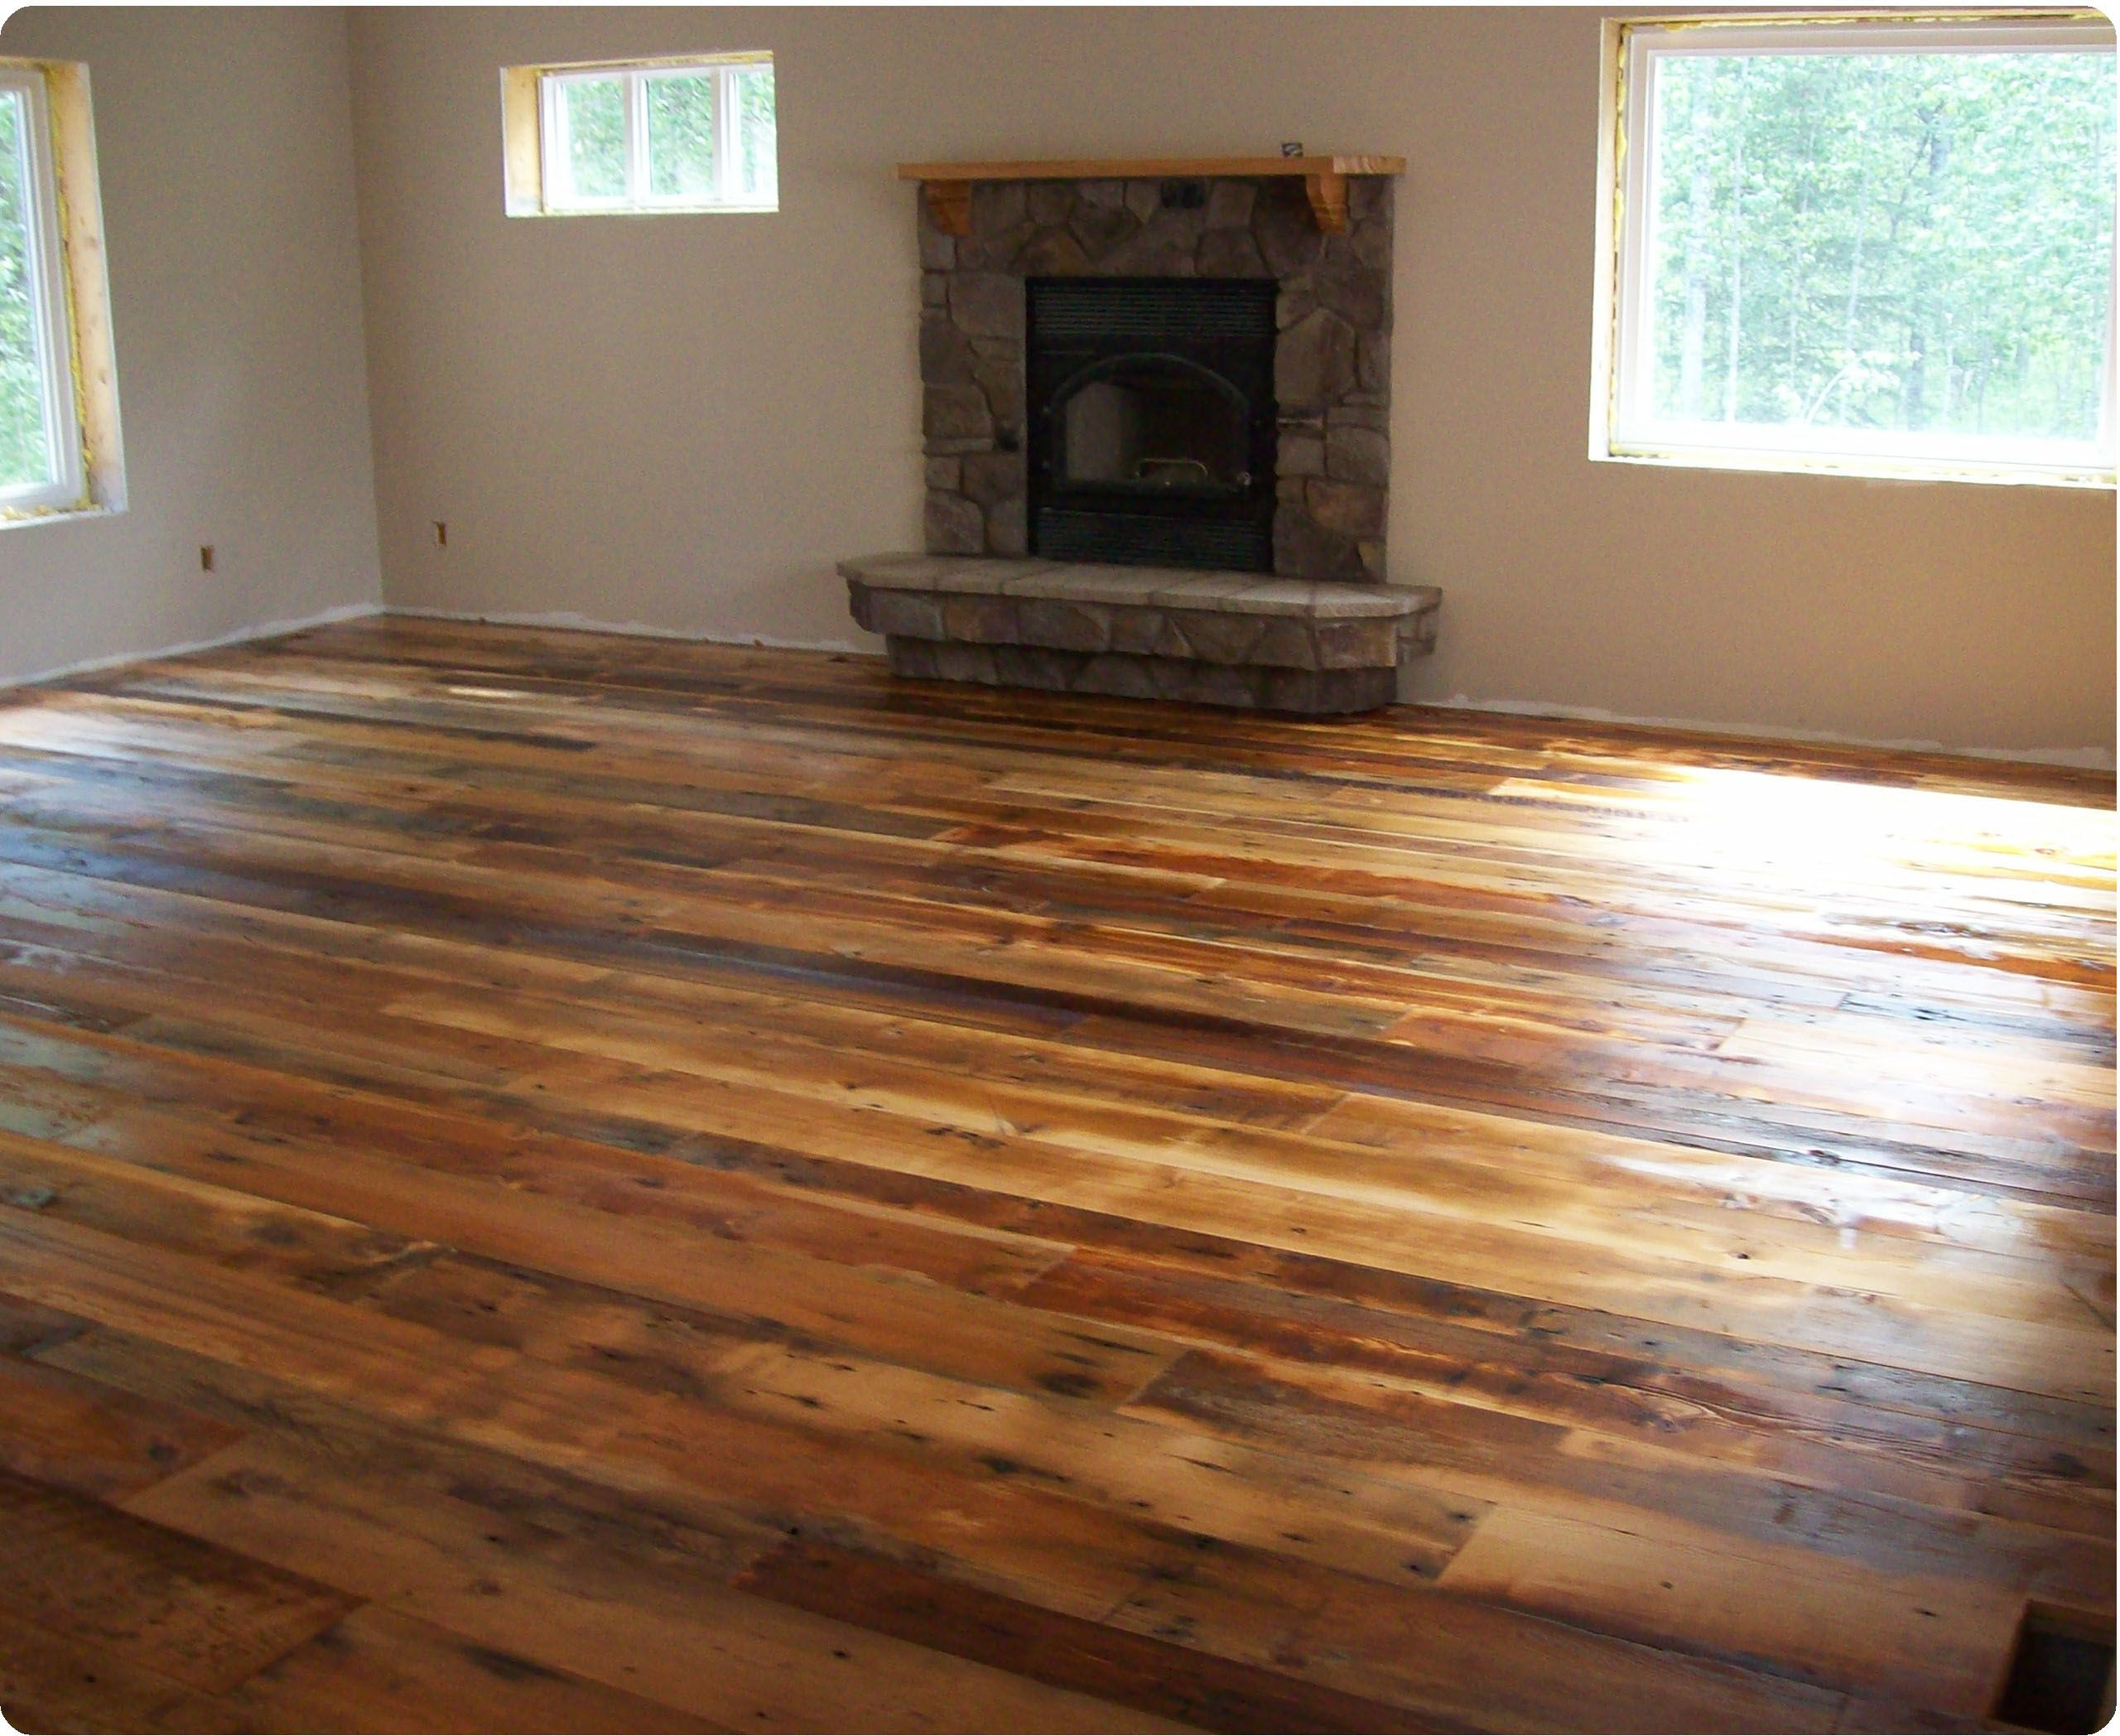 Lovely Wood Floor Images | Golden Touch Interiors   Quality Flooring, Stair  Railing, Cabinets . Wood Flooring TypesBest ...